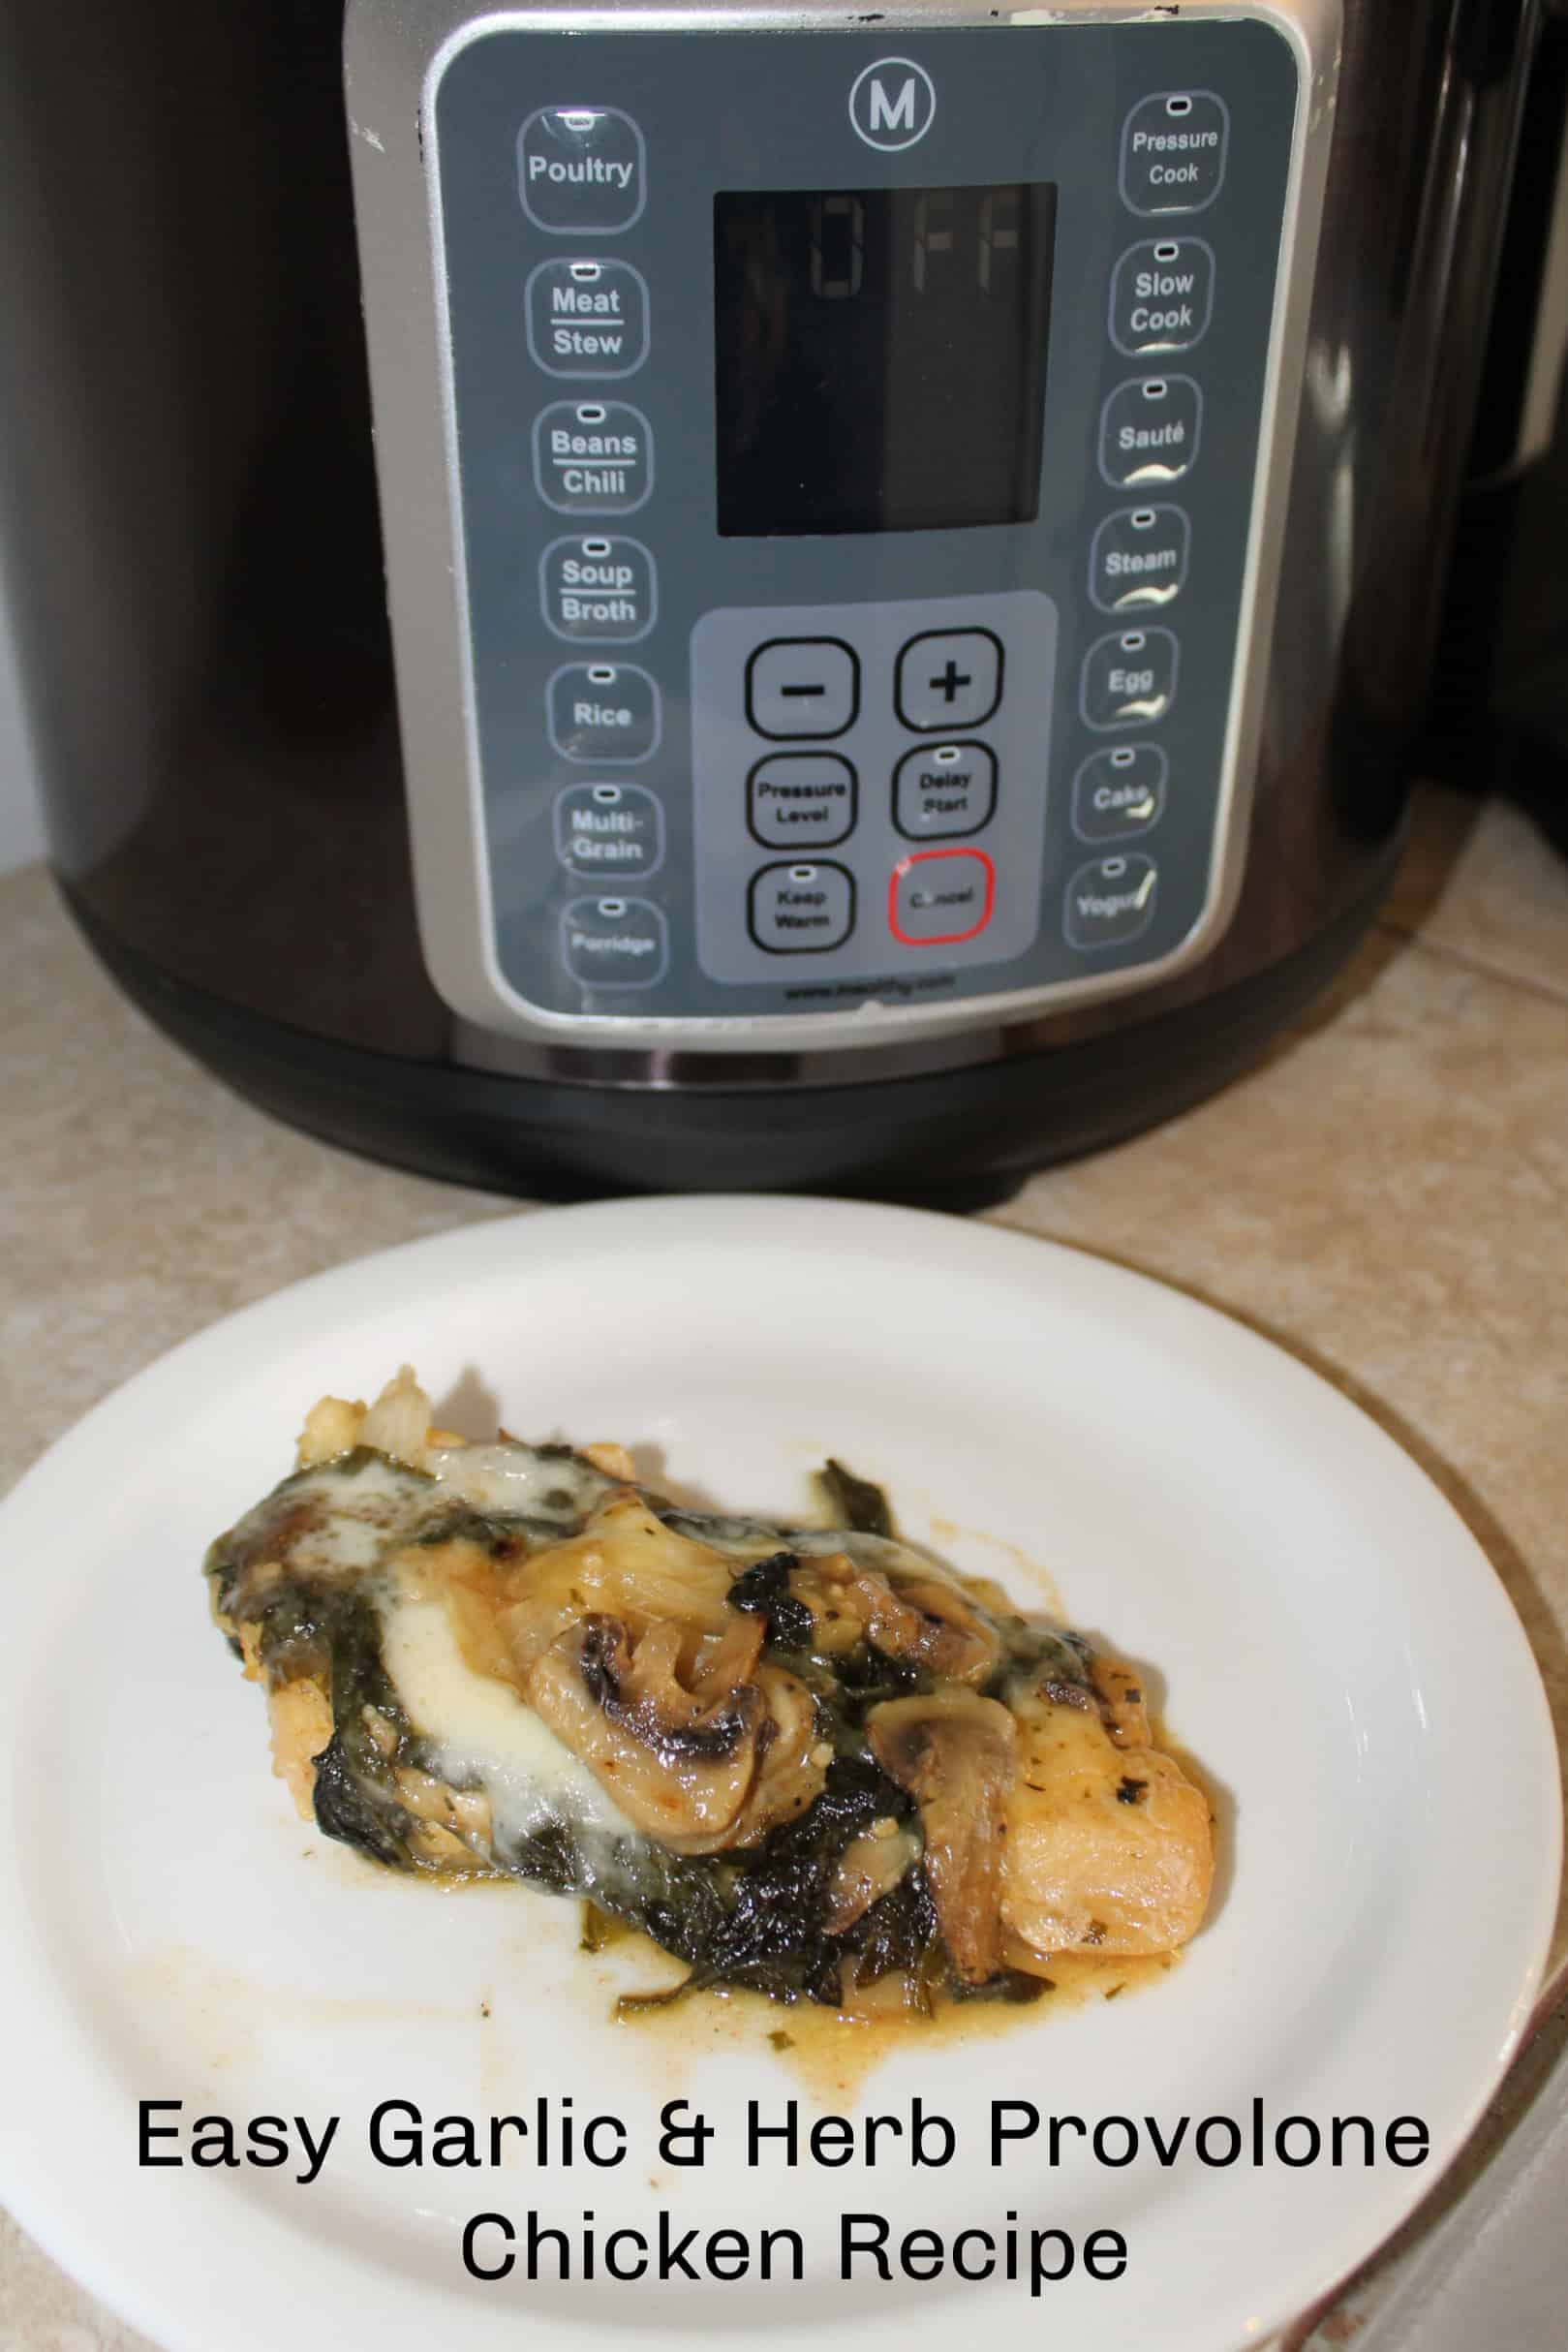 Easy Garlic & Herb Provolone Chicken Recipe